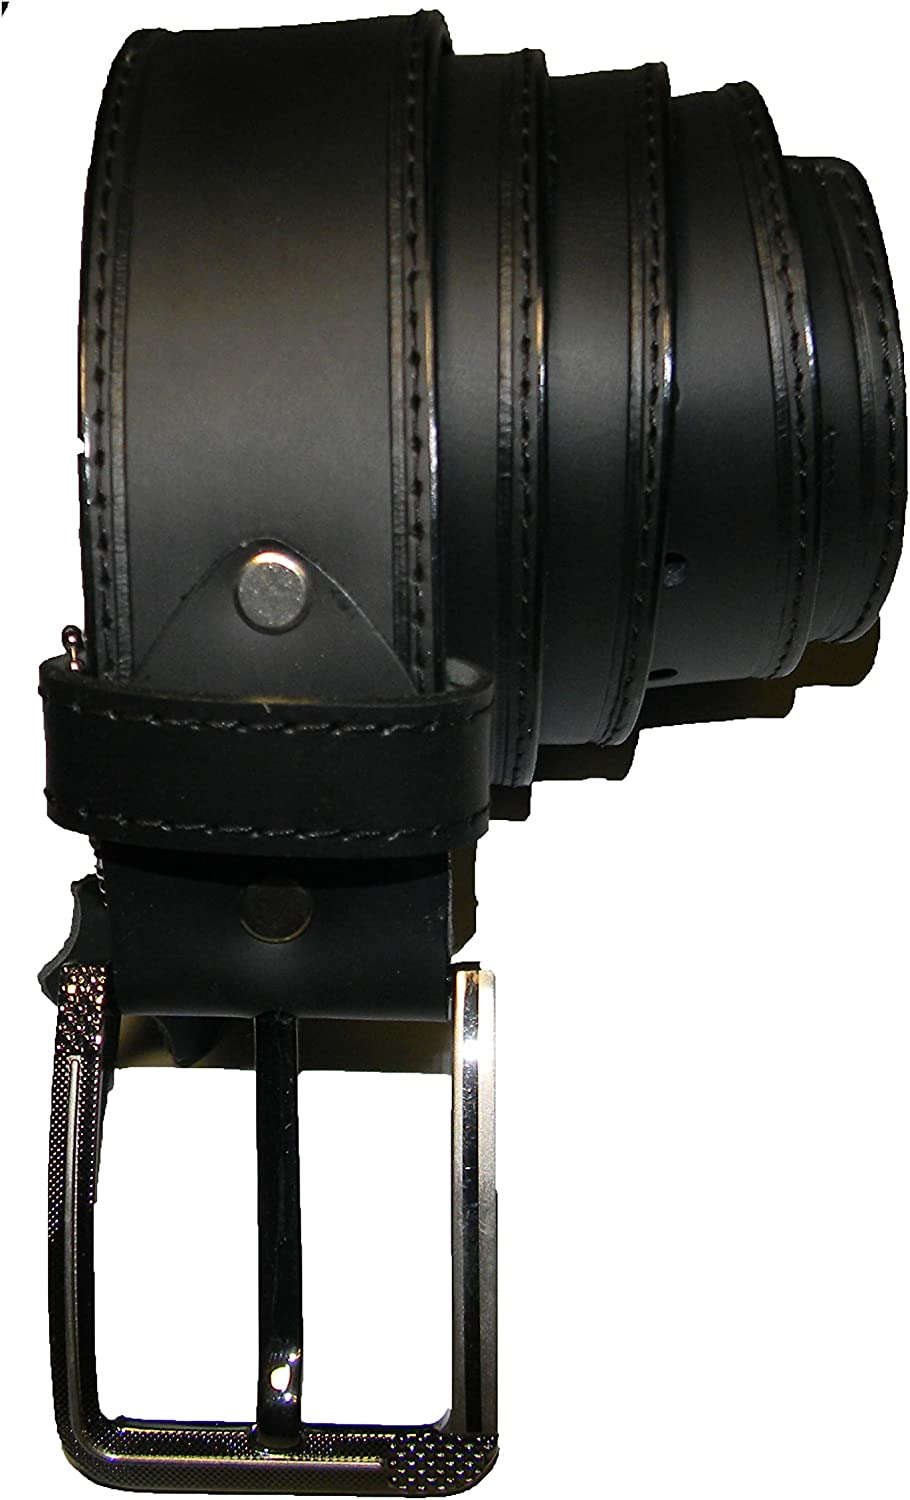 Western Mens Full Grain Black Real Leather Casual Wide Belt with Removable Buckle for Dress and Jeans